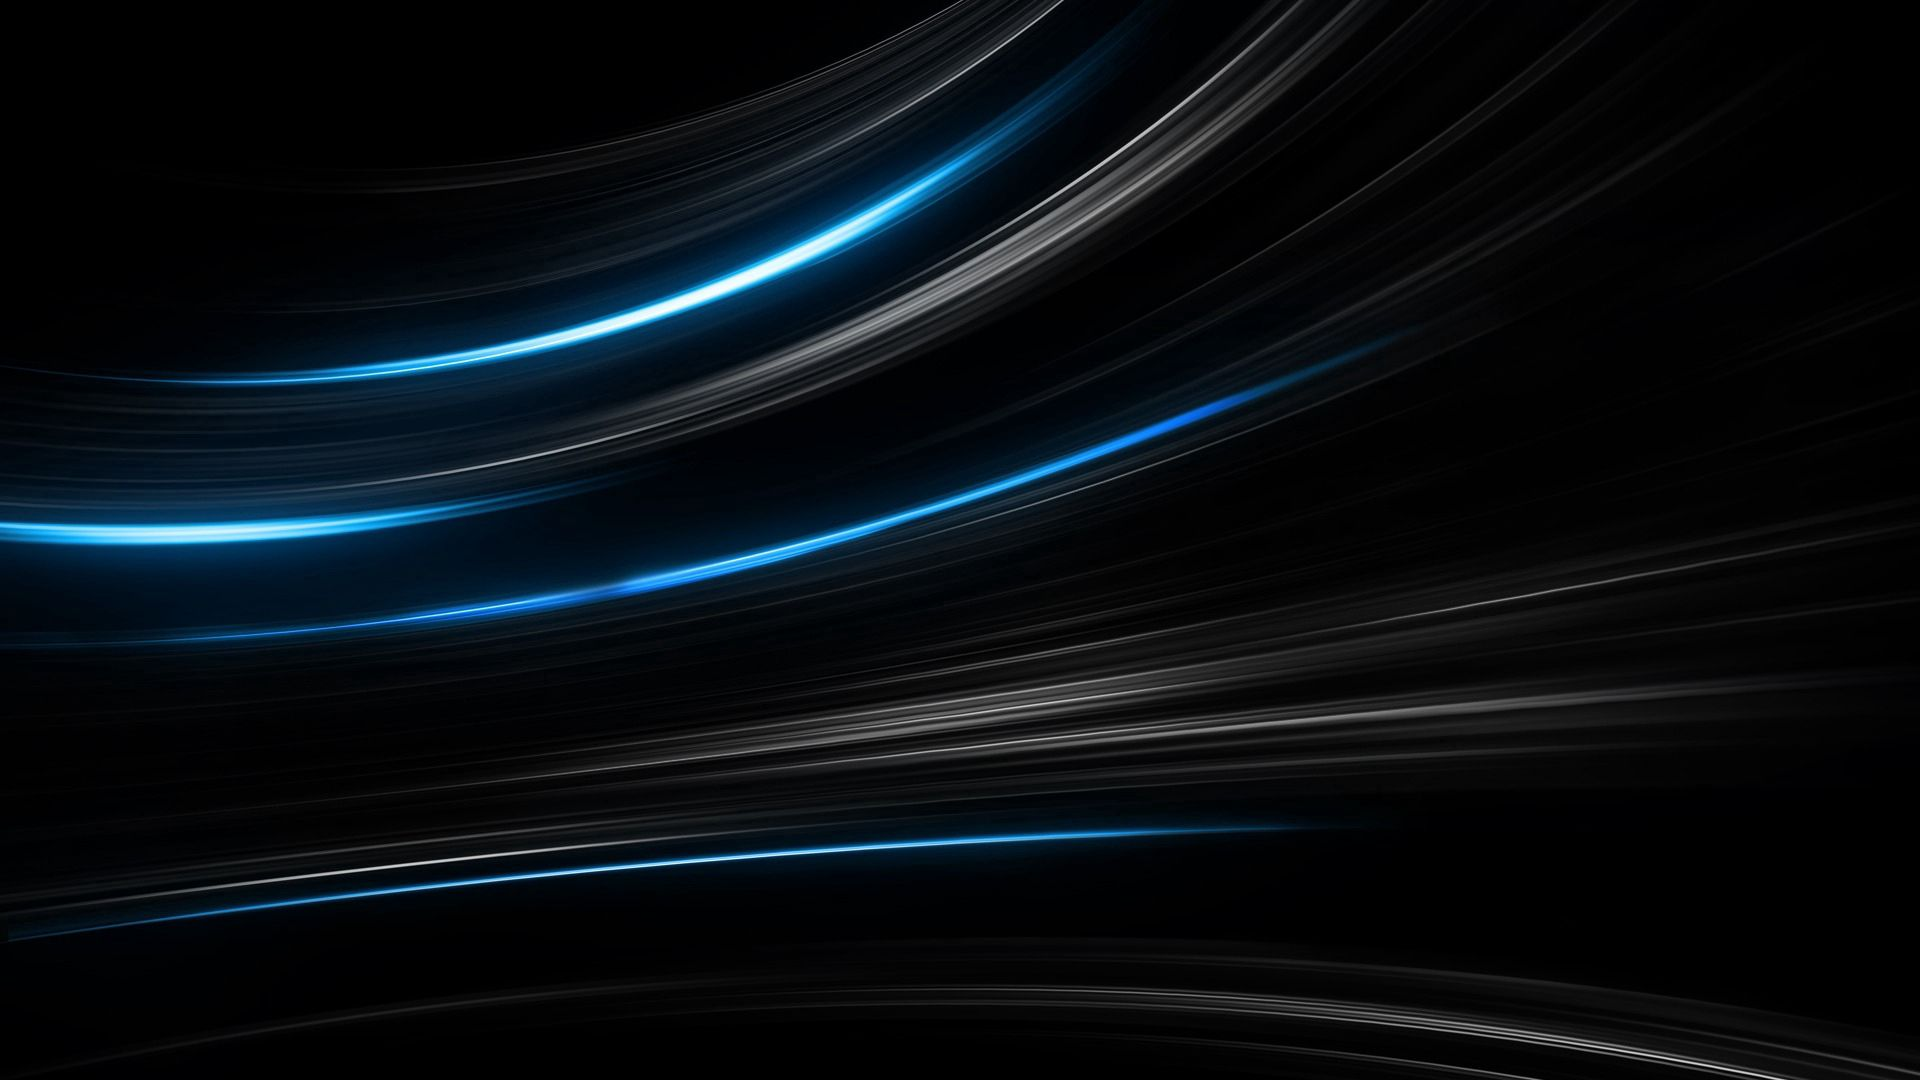 93491 download wallpaper Abstract, Stripes, Streaks screensavers and pictures for free